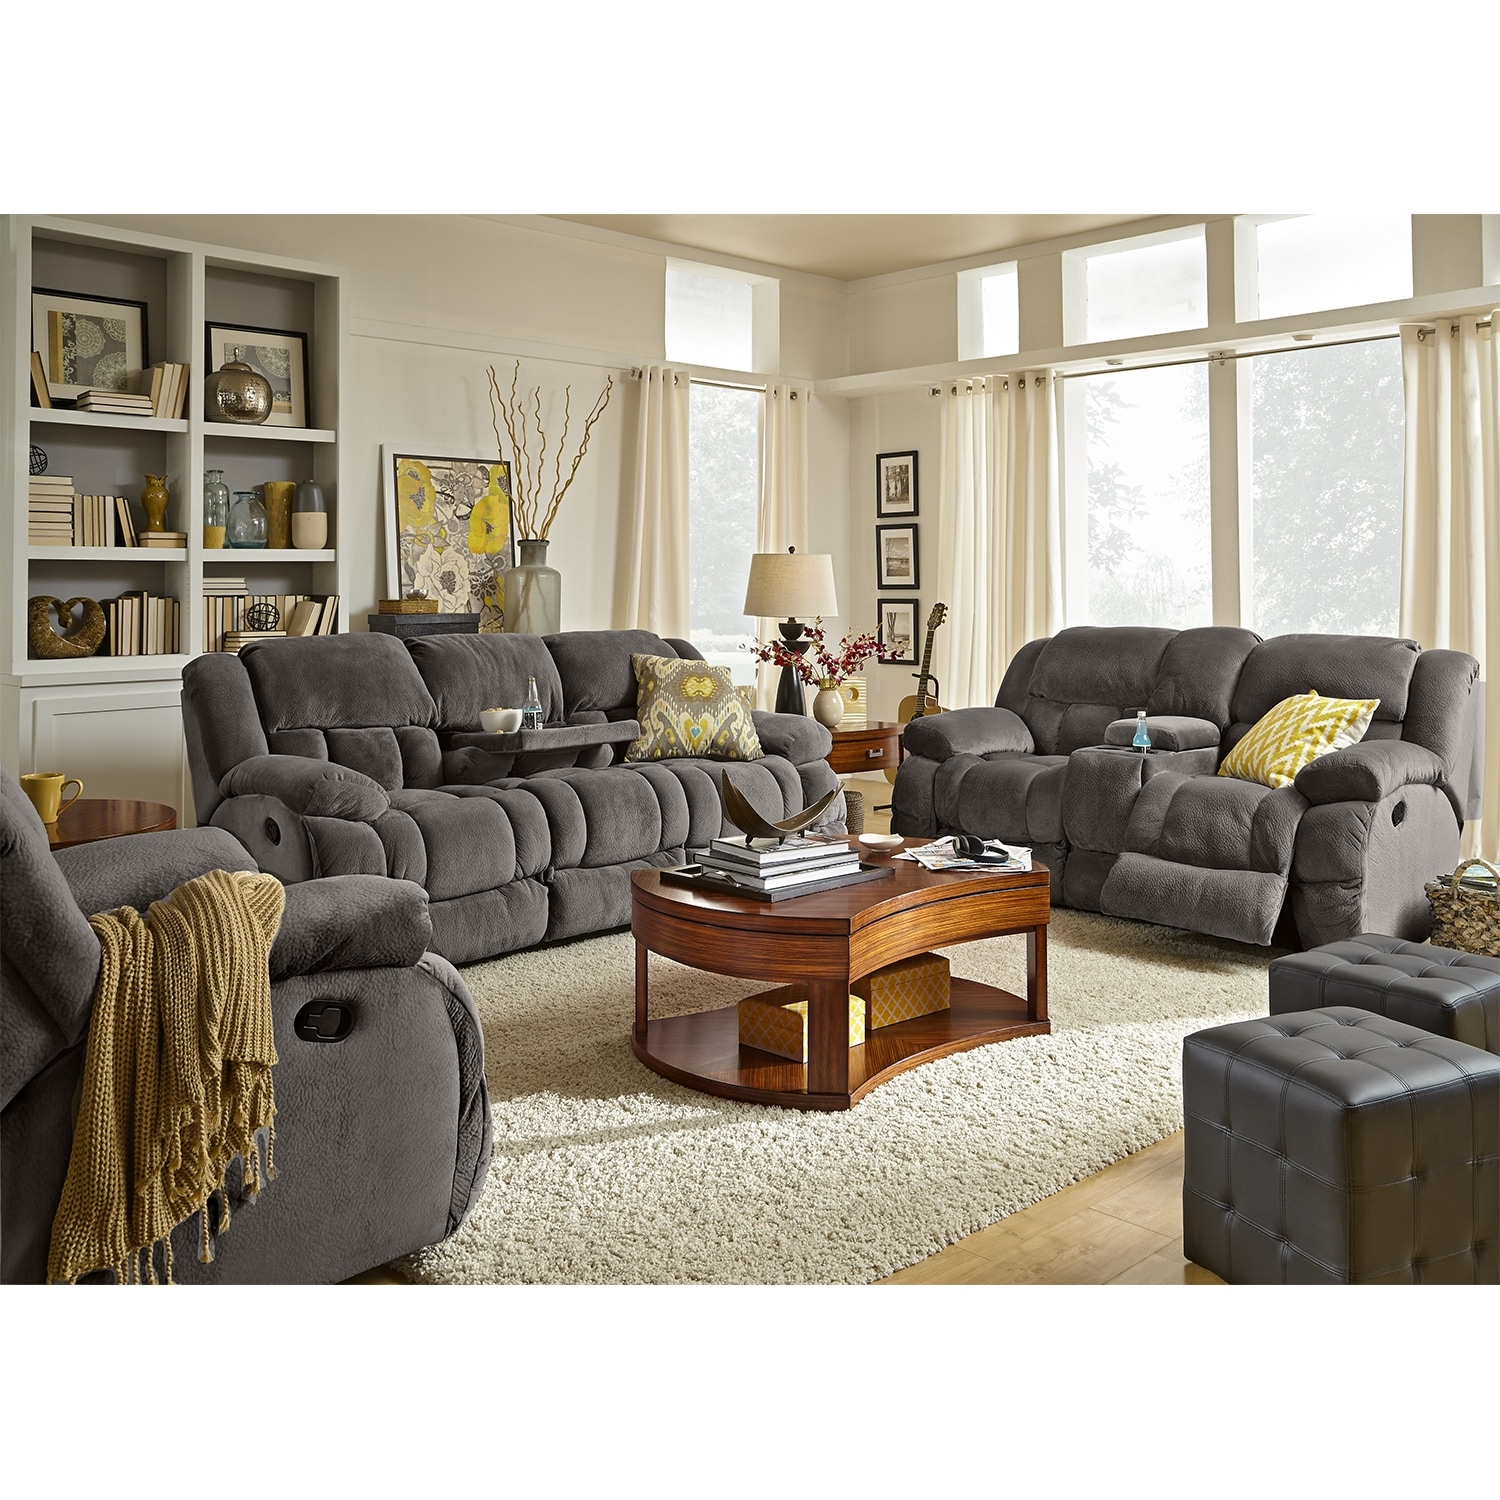 Park City Upholstery 2 Pc Reclining Living Room Value City Furniture